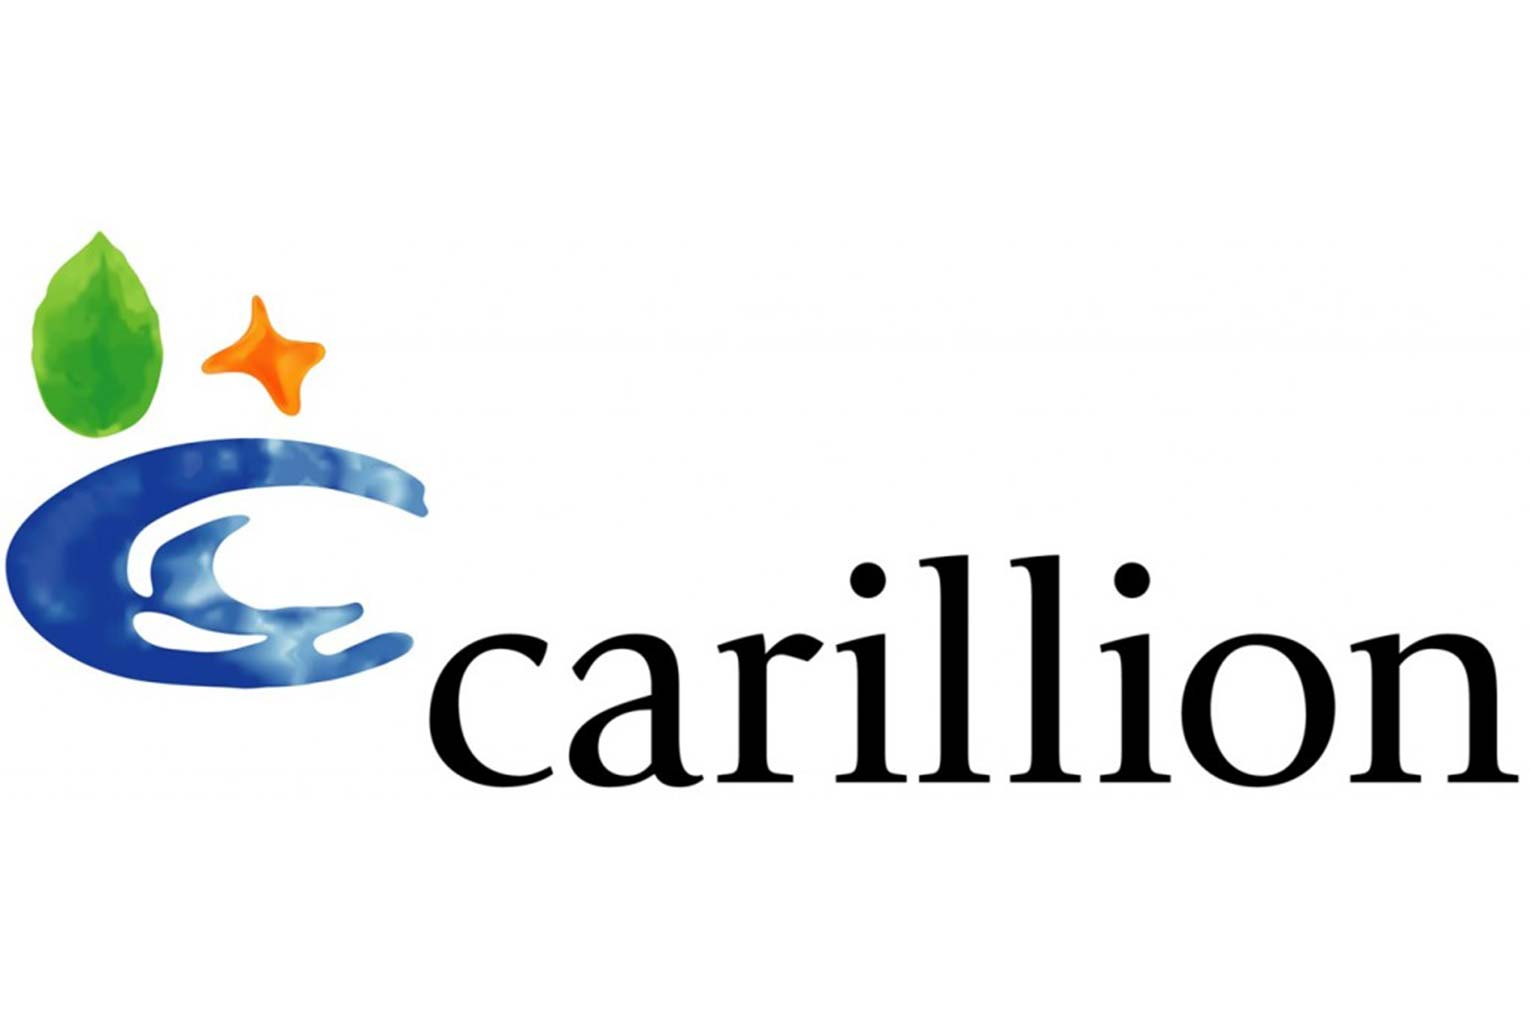 BFS announces SME measures in wake of Carillion collapse